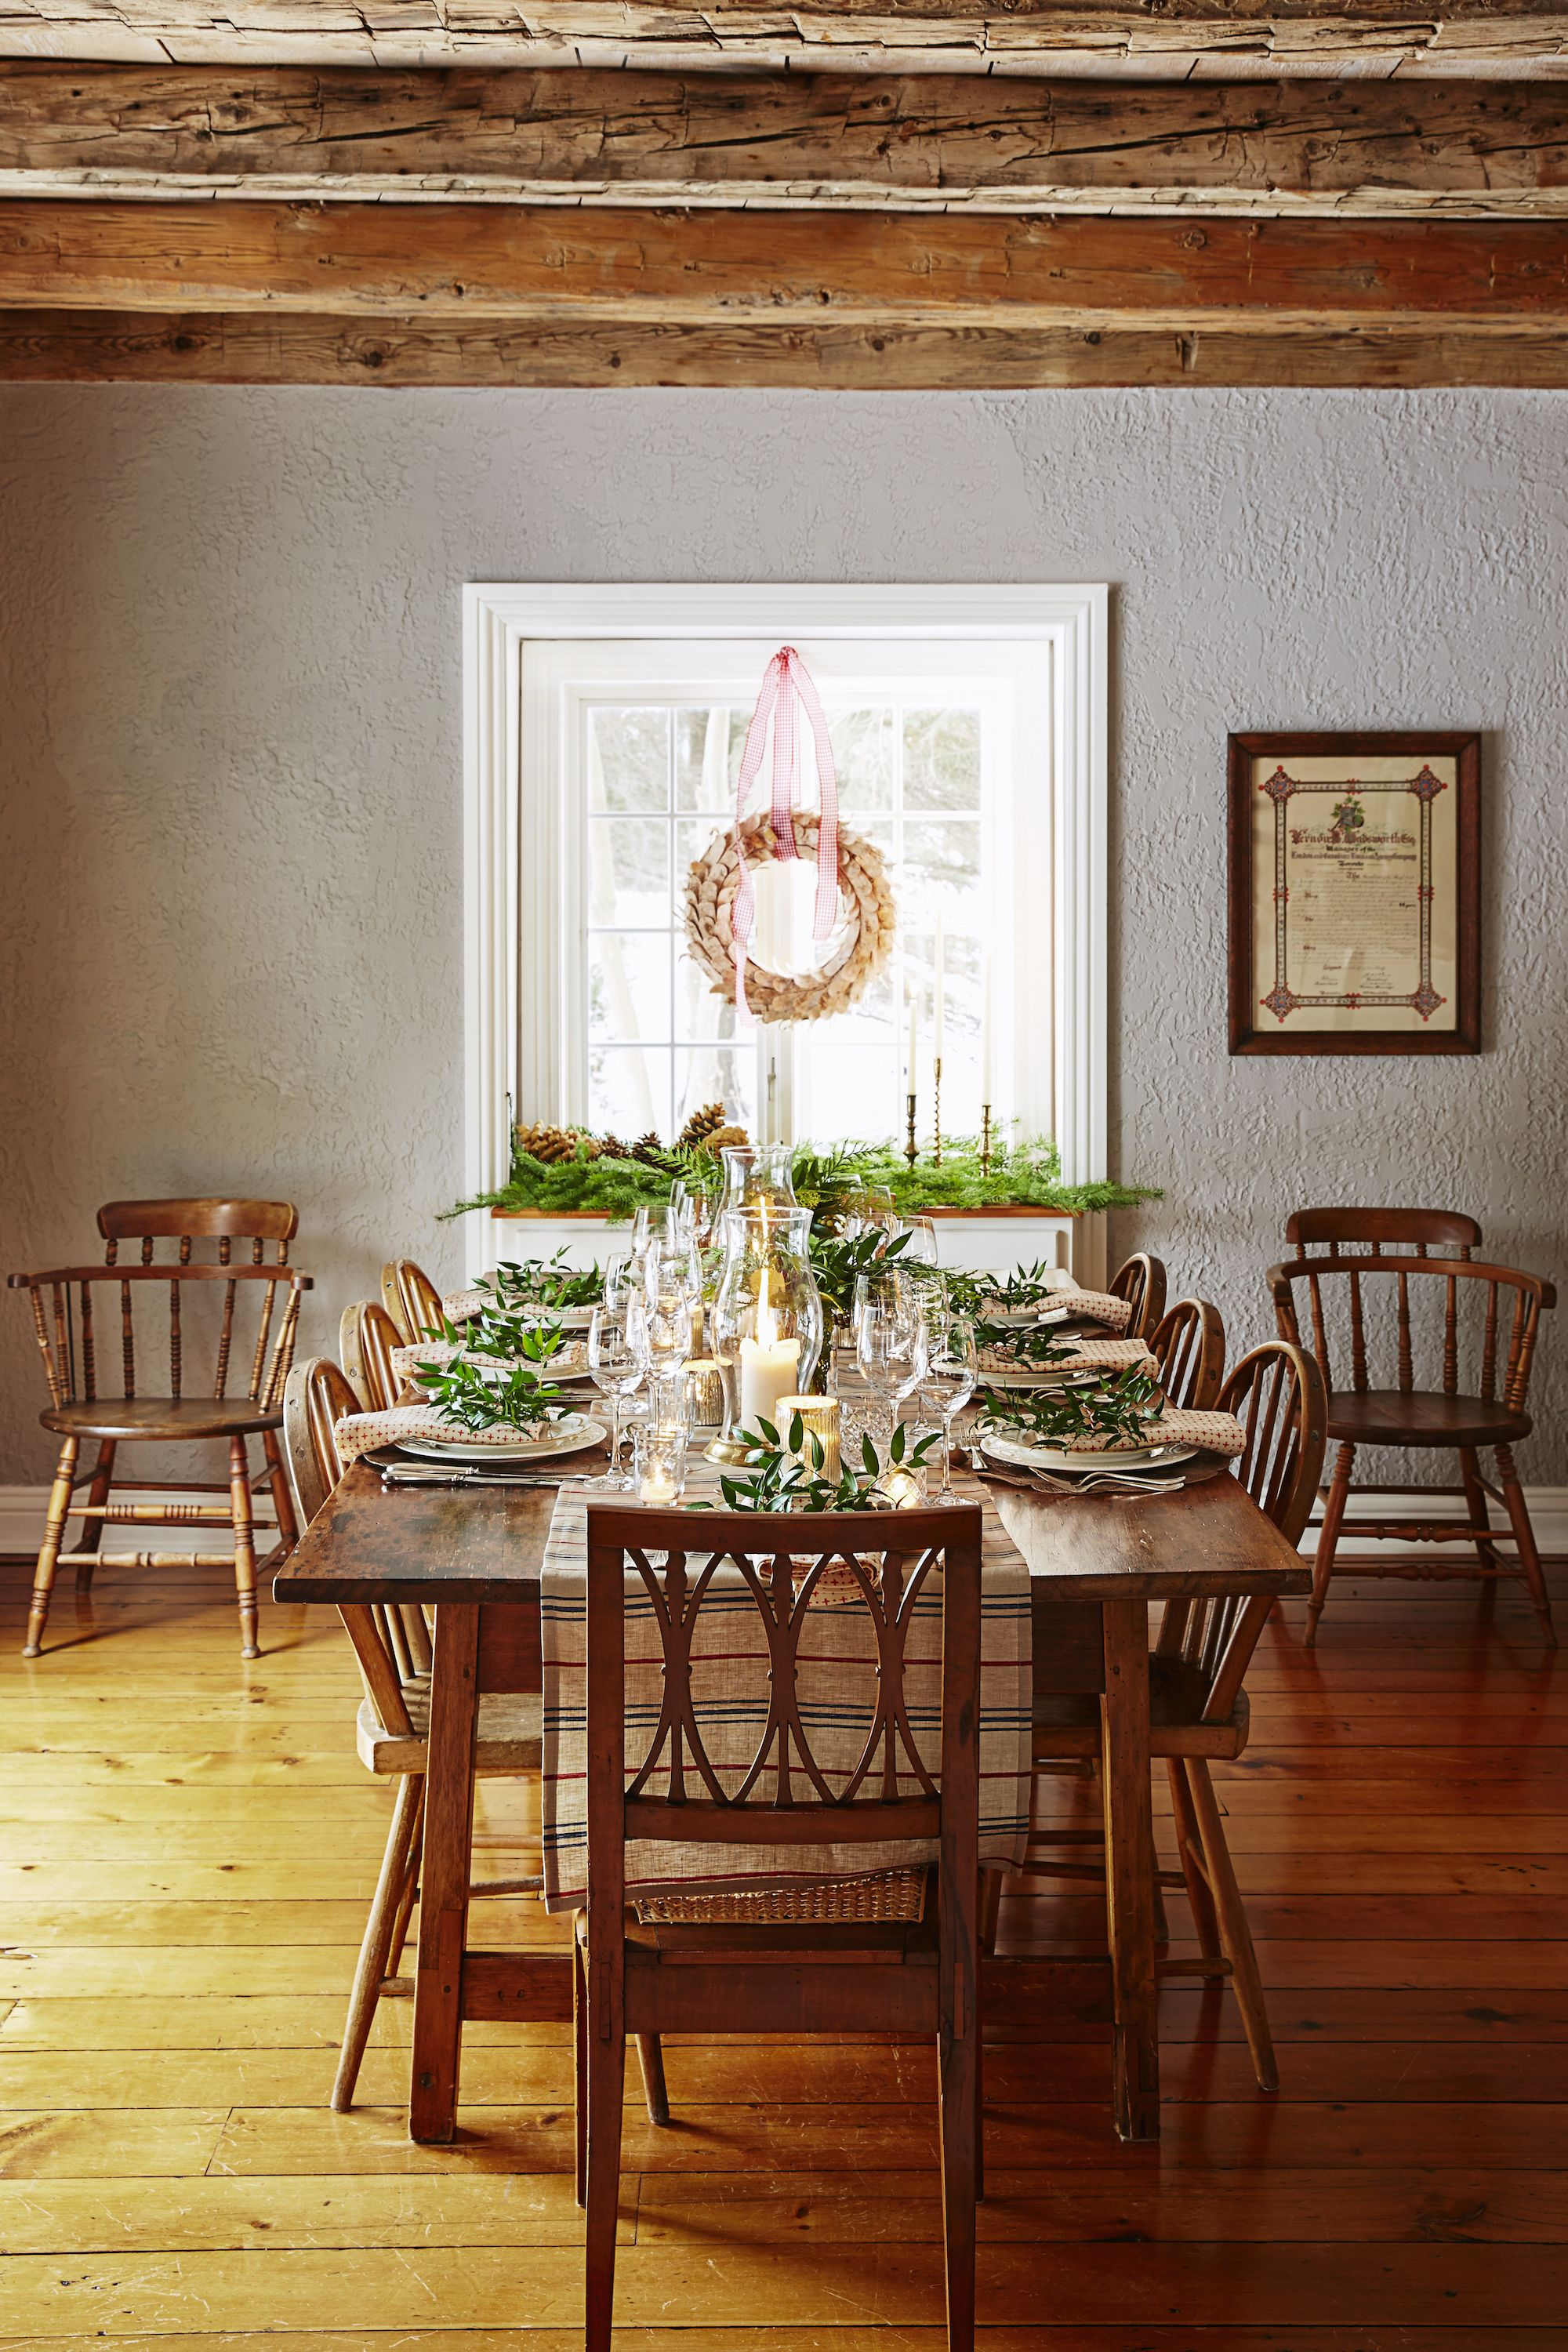 living room table decor affordable interior design 40 diy christmas decorations and settings centerpieces ideas for your